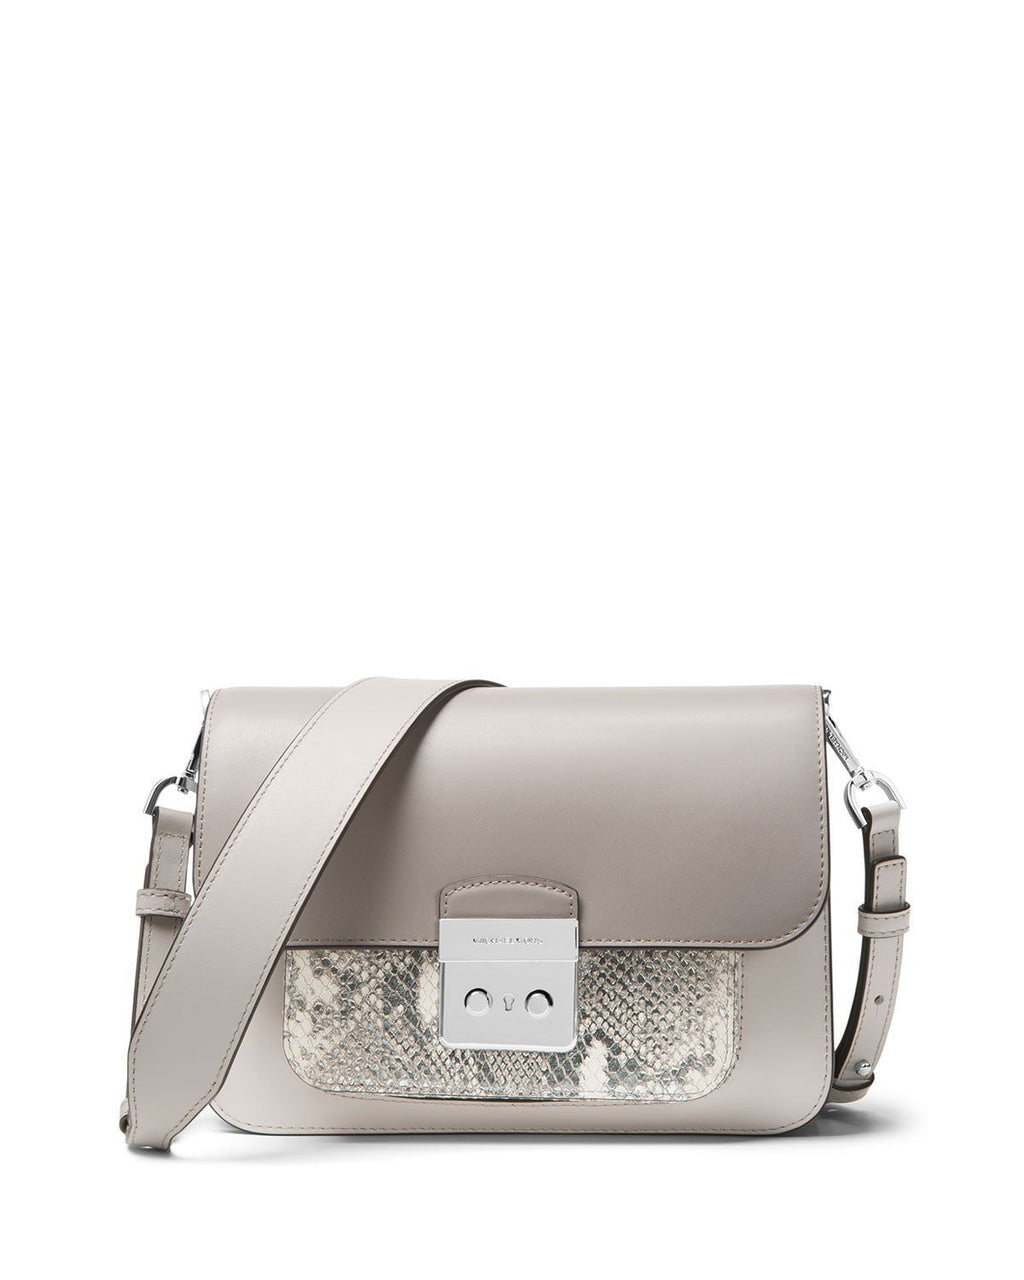 MICHAEL Michael Kors Sloan Editor Large Shoulder Bag - Silver Hardware